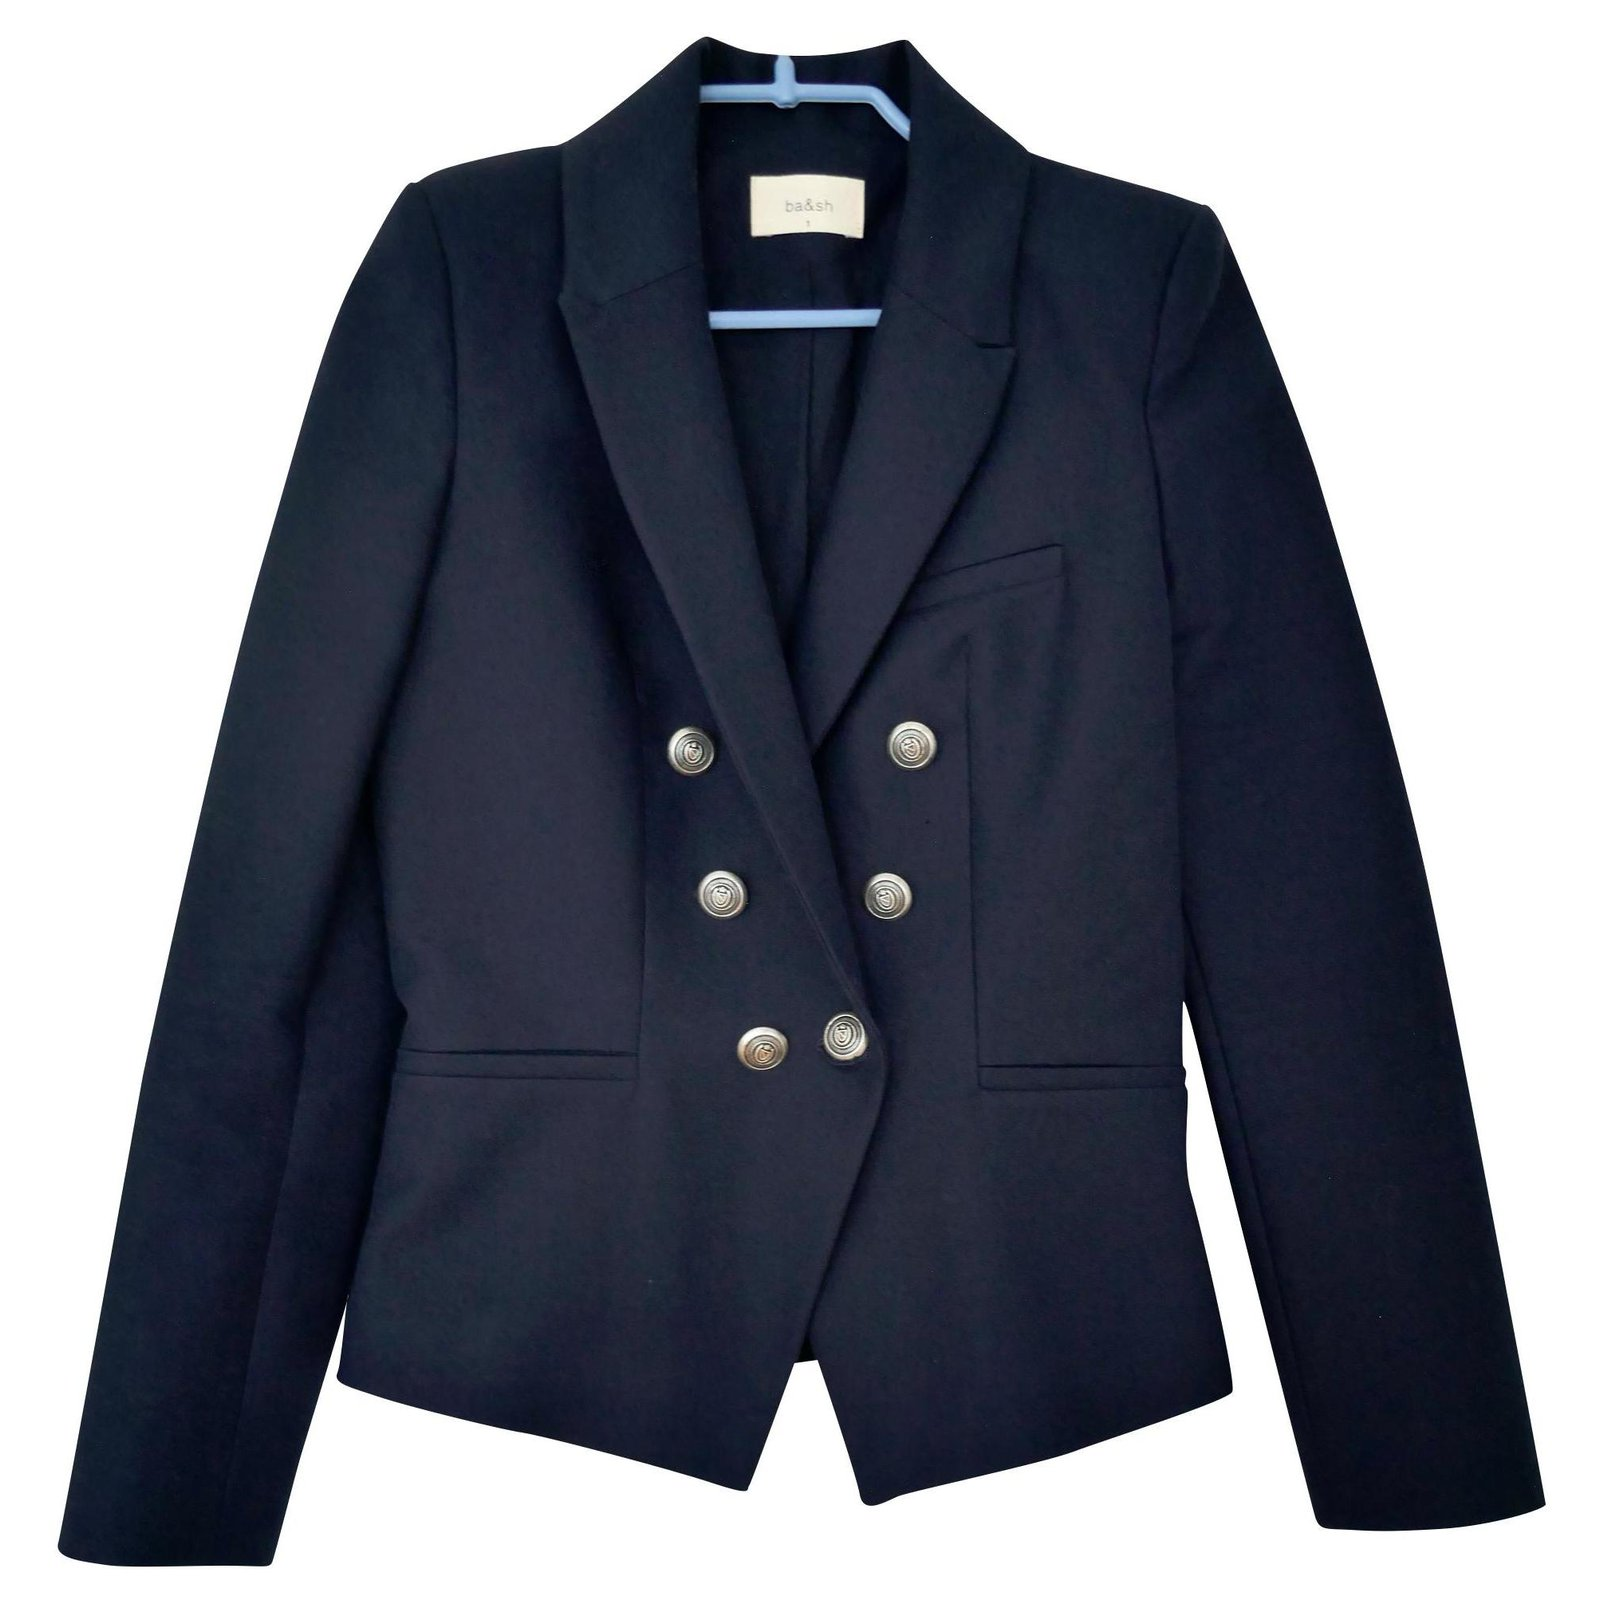 MANTEAU WISH MARINE ba&sh